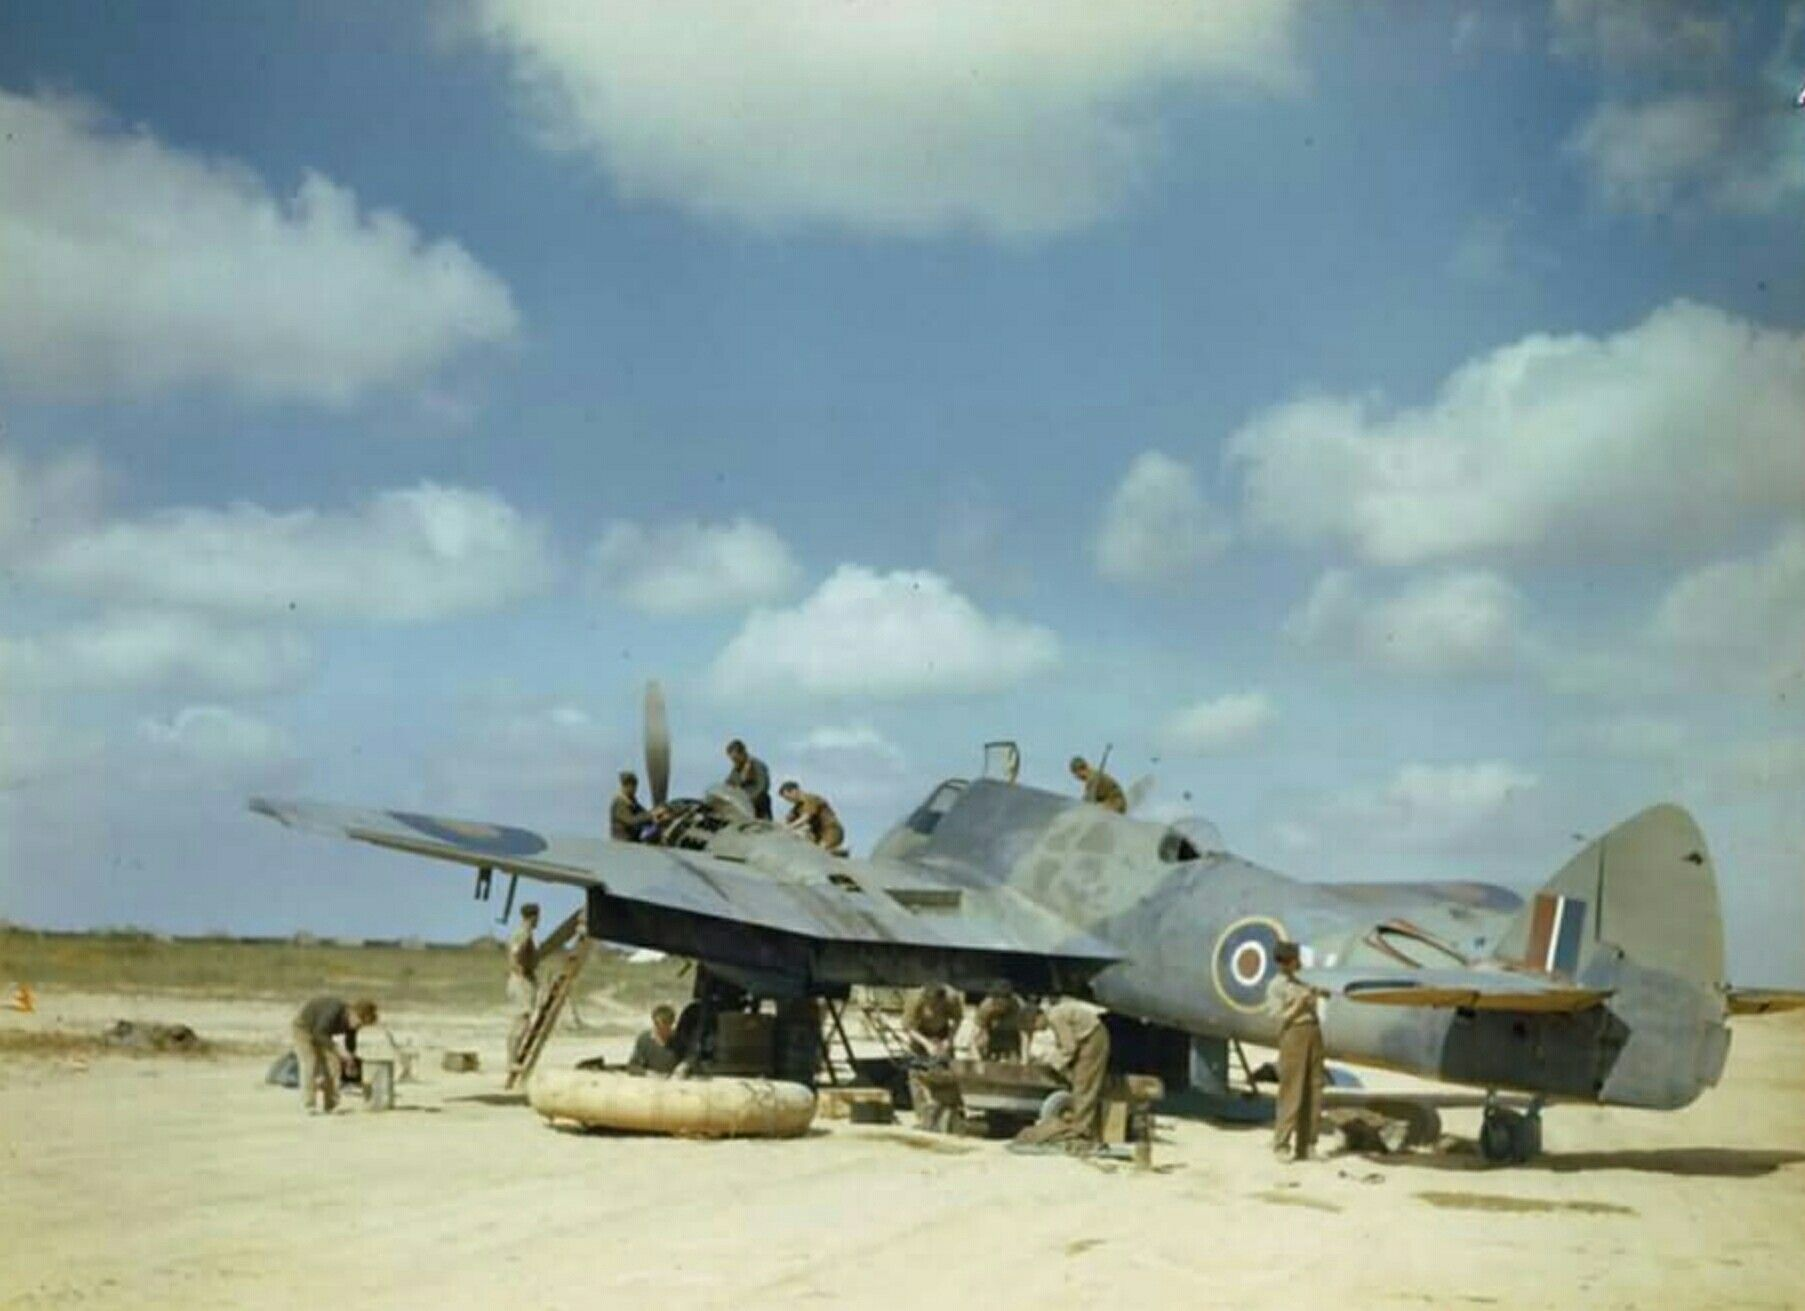 Bristol Beaufighter 252 Squadron Being Serviced In The North West African Desert